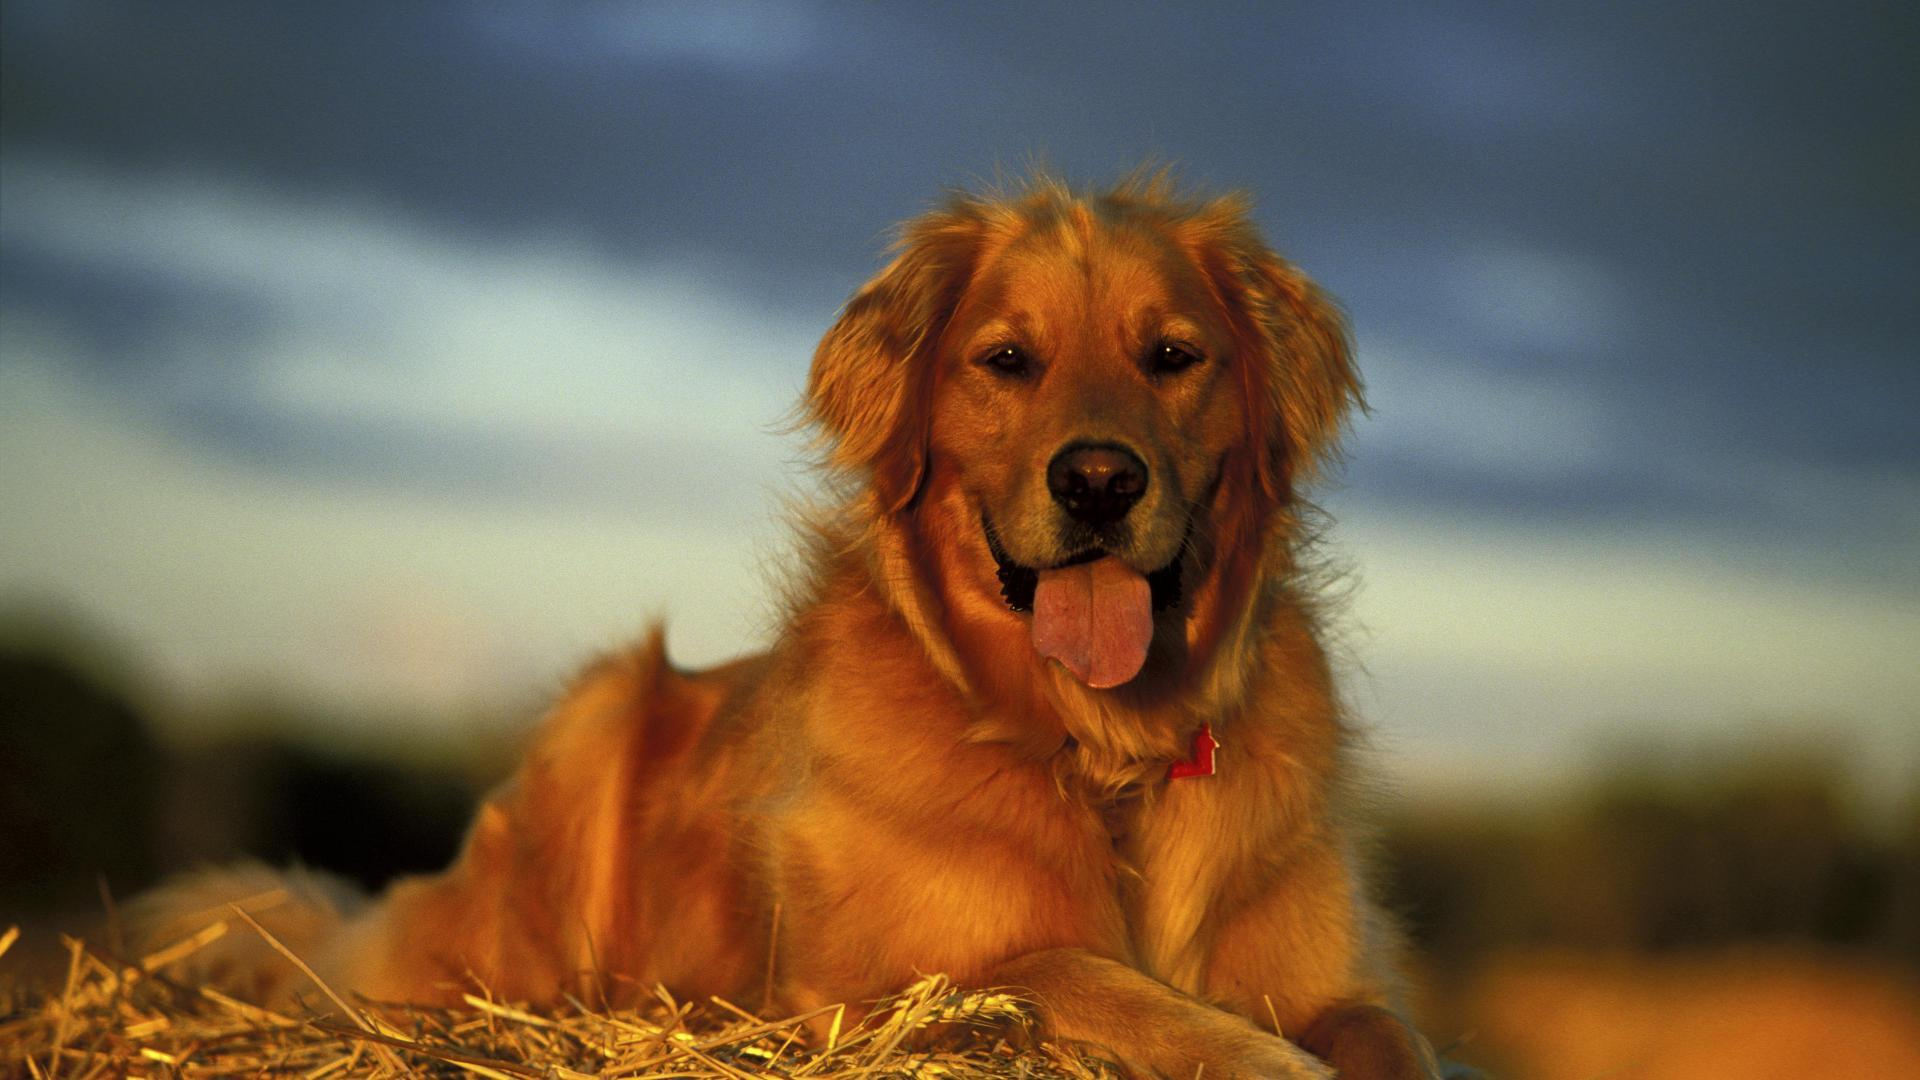 Golden Retriever Hd Wallpaper For Android Apk Download